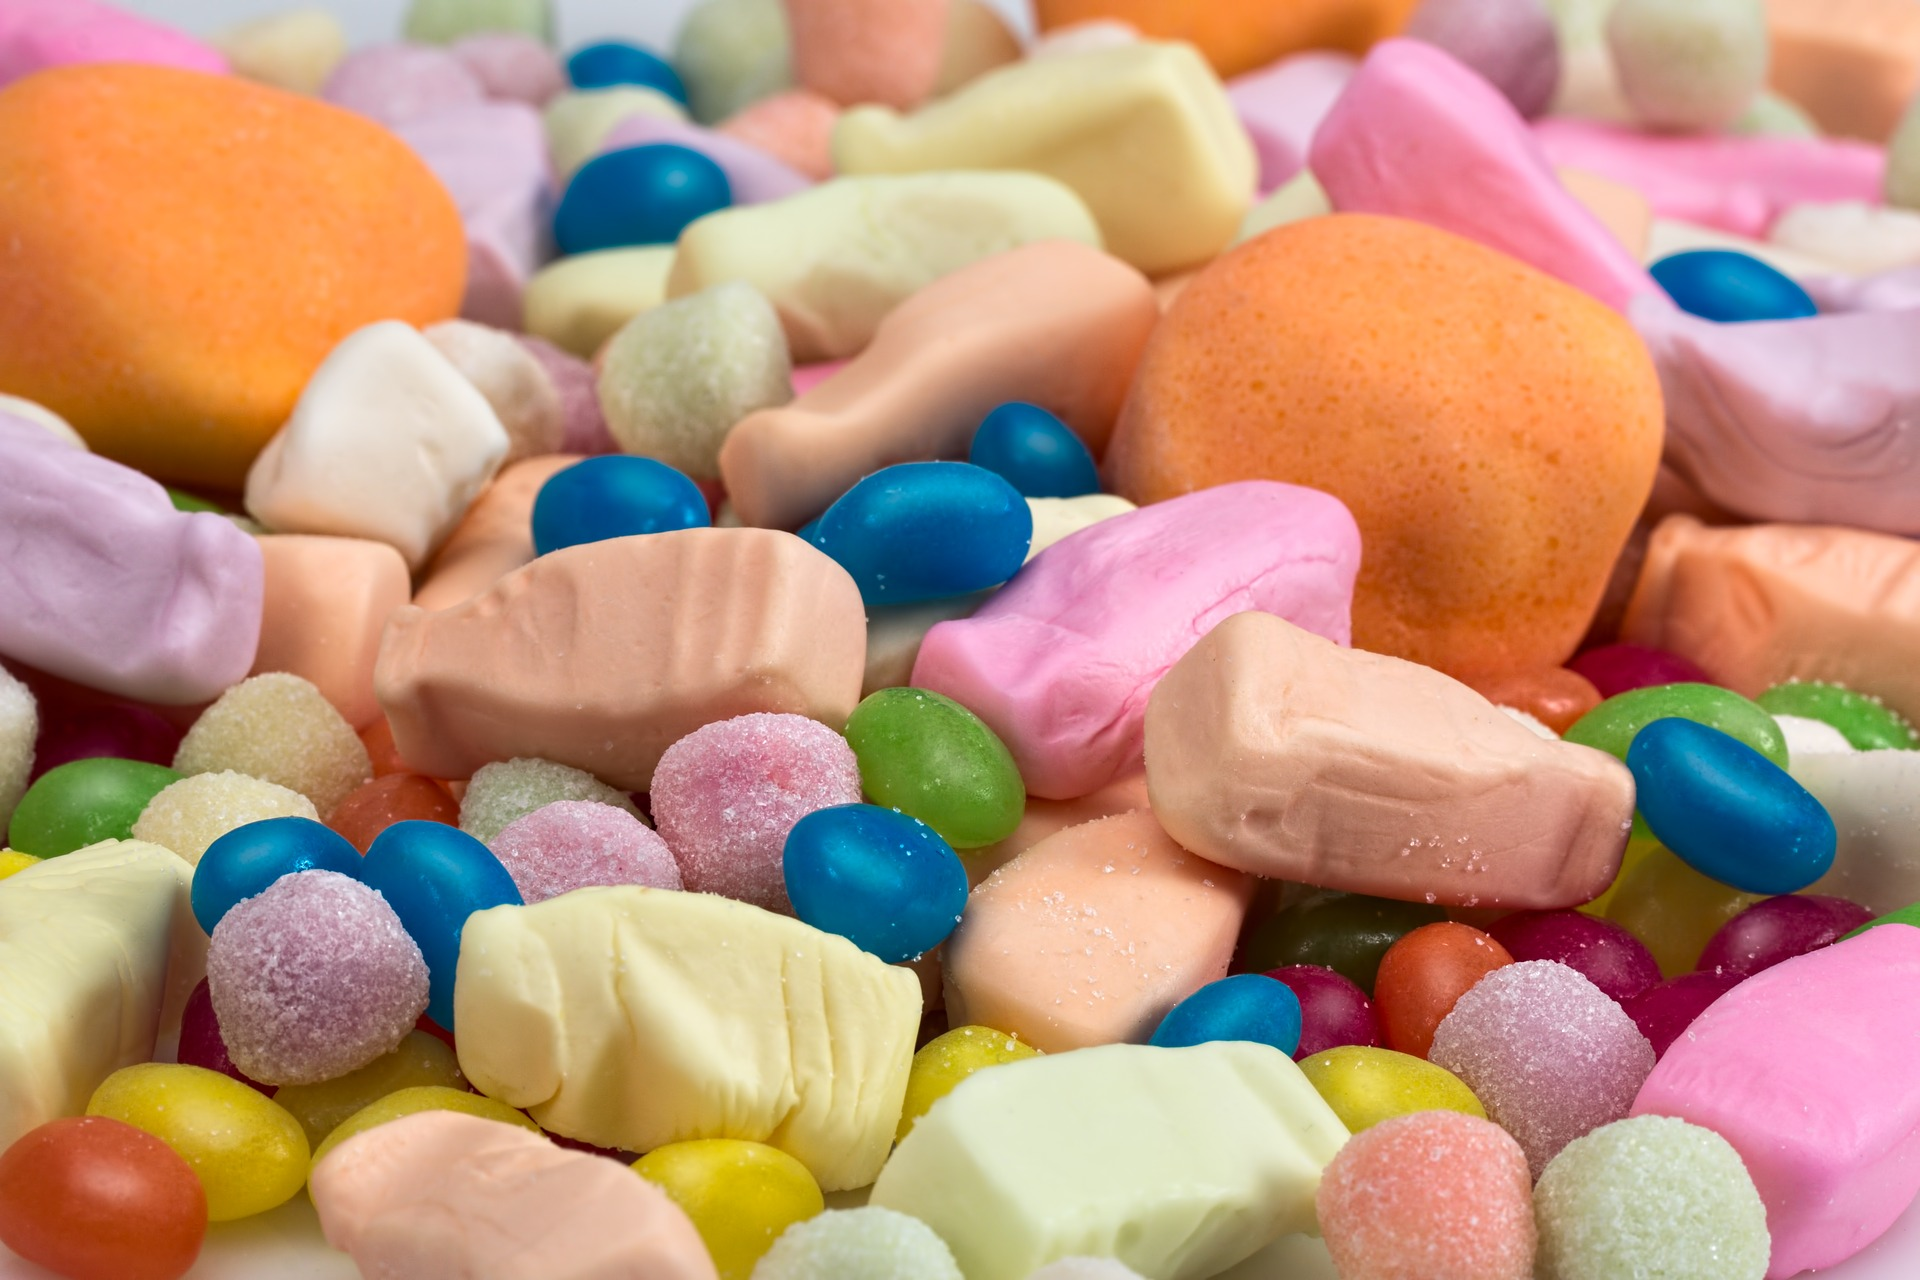 2020.11. Stamegna Virtual Meeting - Snacks & Confectionery